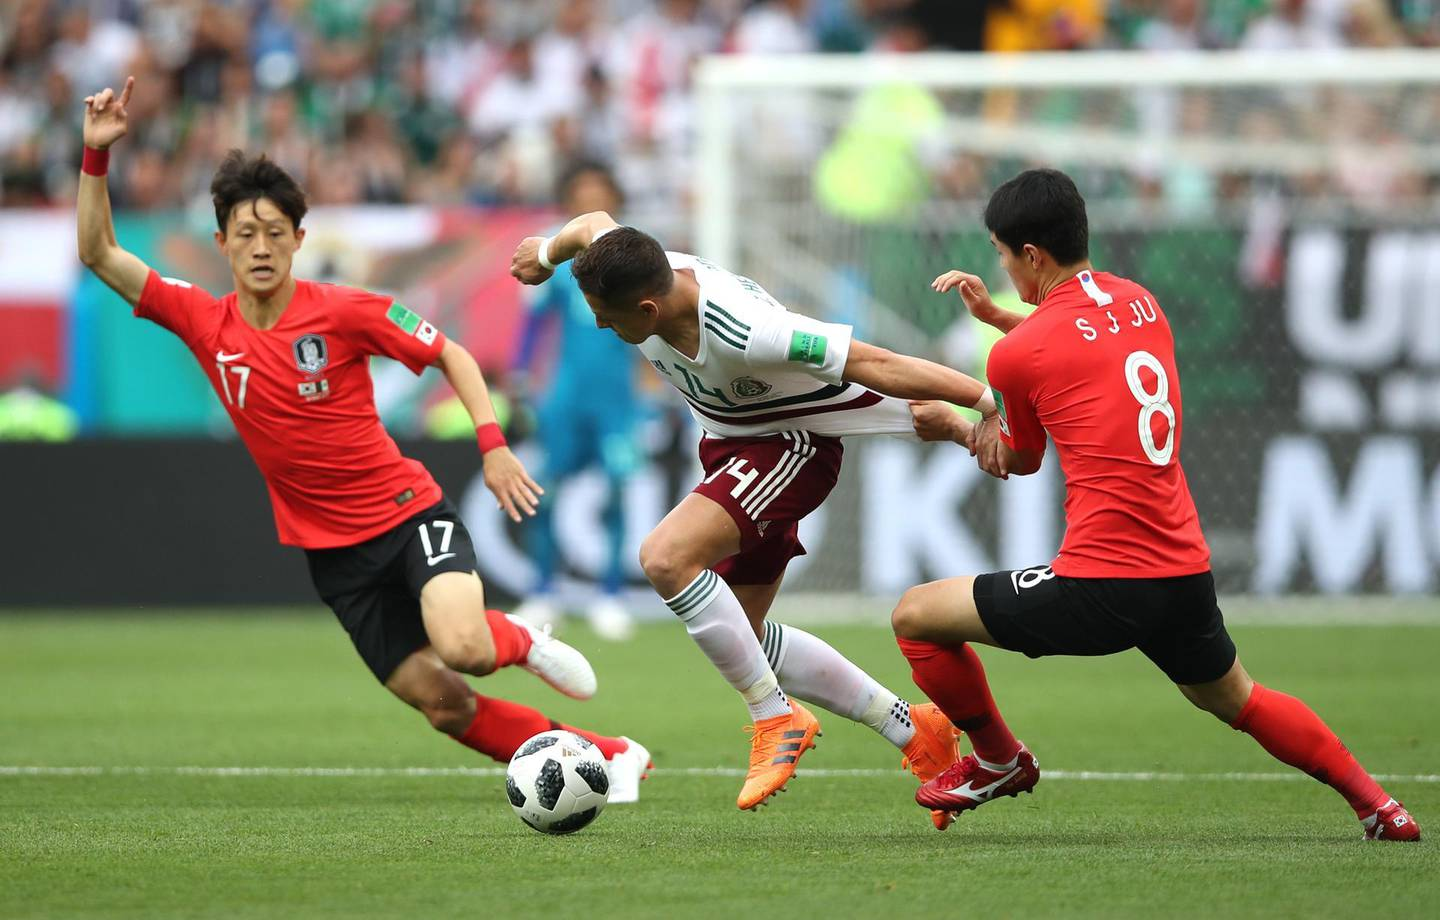 ROSTOV-ON-DON, RUSSIA - JUNE 23:  Javier Hernandez of Mexico challenge for the ball with Ju Se-Jong and Lee Jae-Sung of Korea Republic during the 2018 FIFA World Cup Russia group F match between Korea Republic and Mexico at Rostov Arena on June 23, 2018 in Rostov-on-Don, Russia.  (Photo by Clive Brunskill/Getty Images)